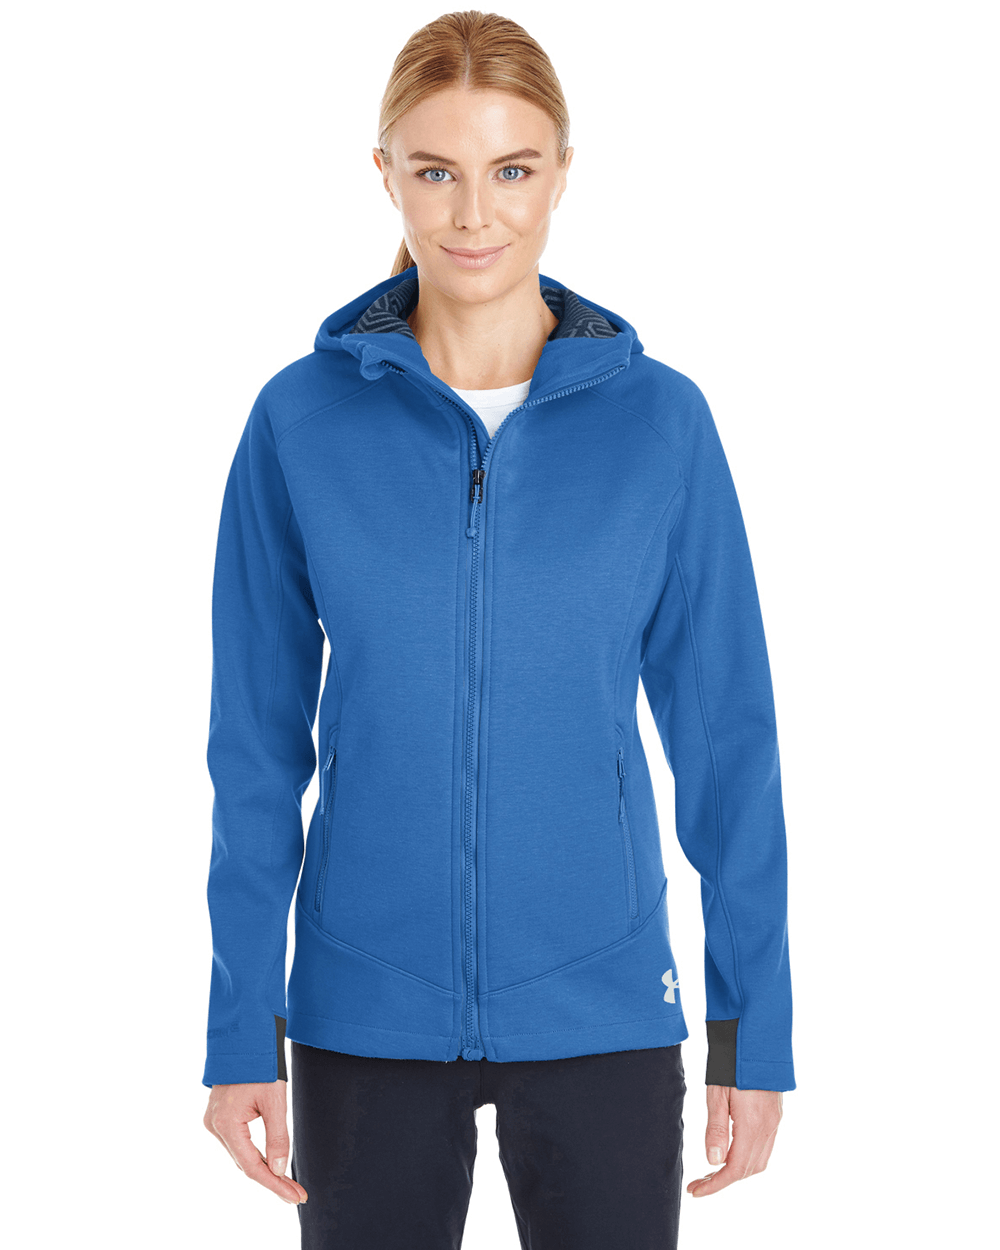 Ladies CGI Dobson Soft Shell